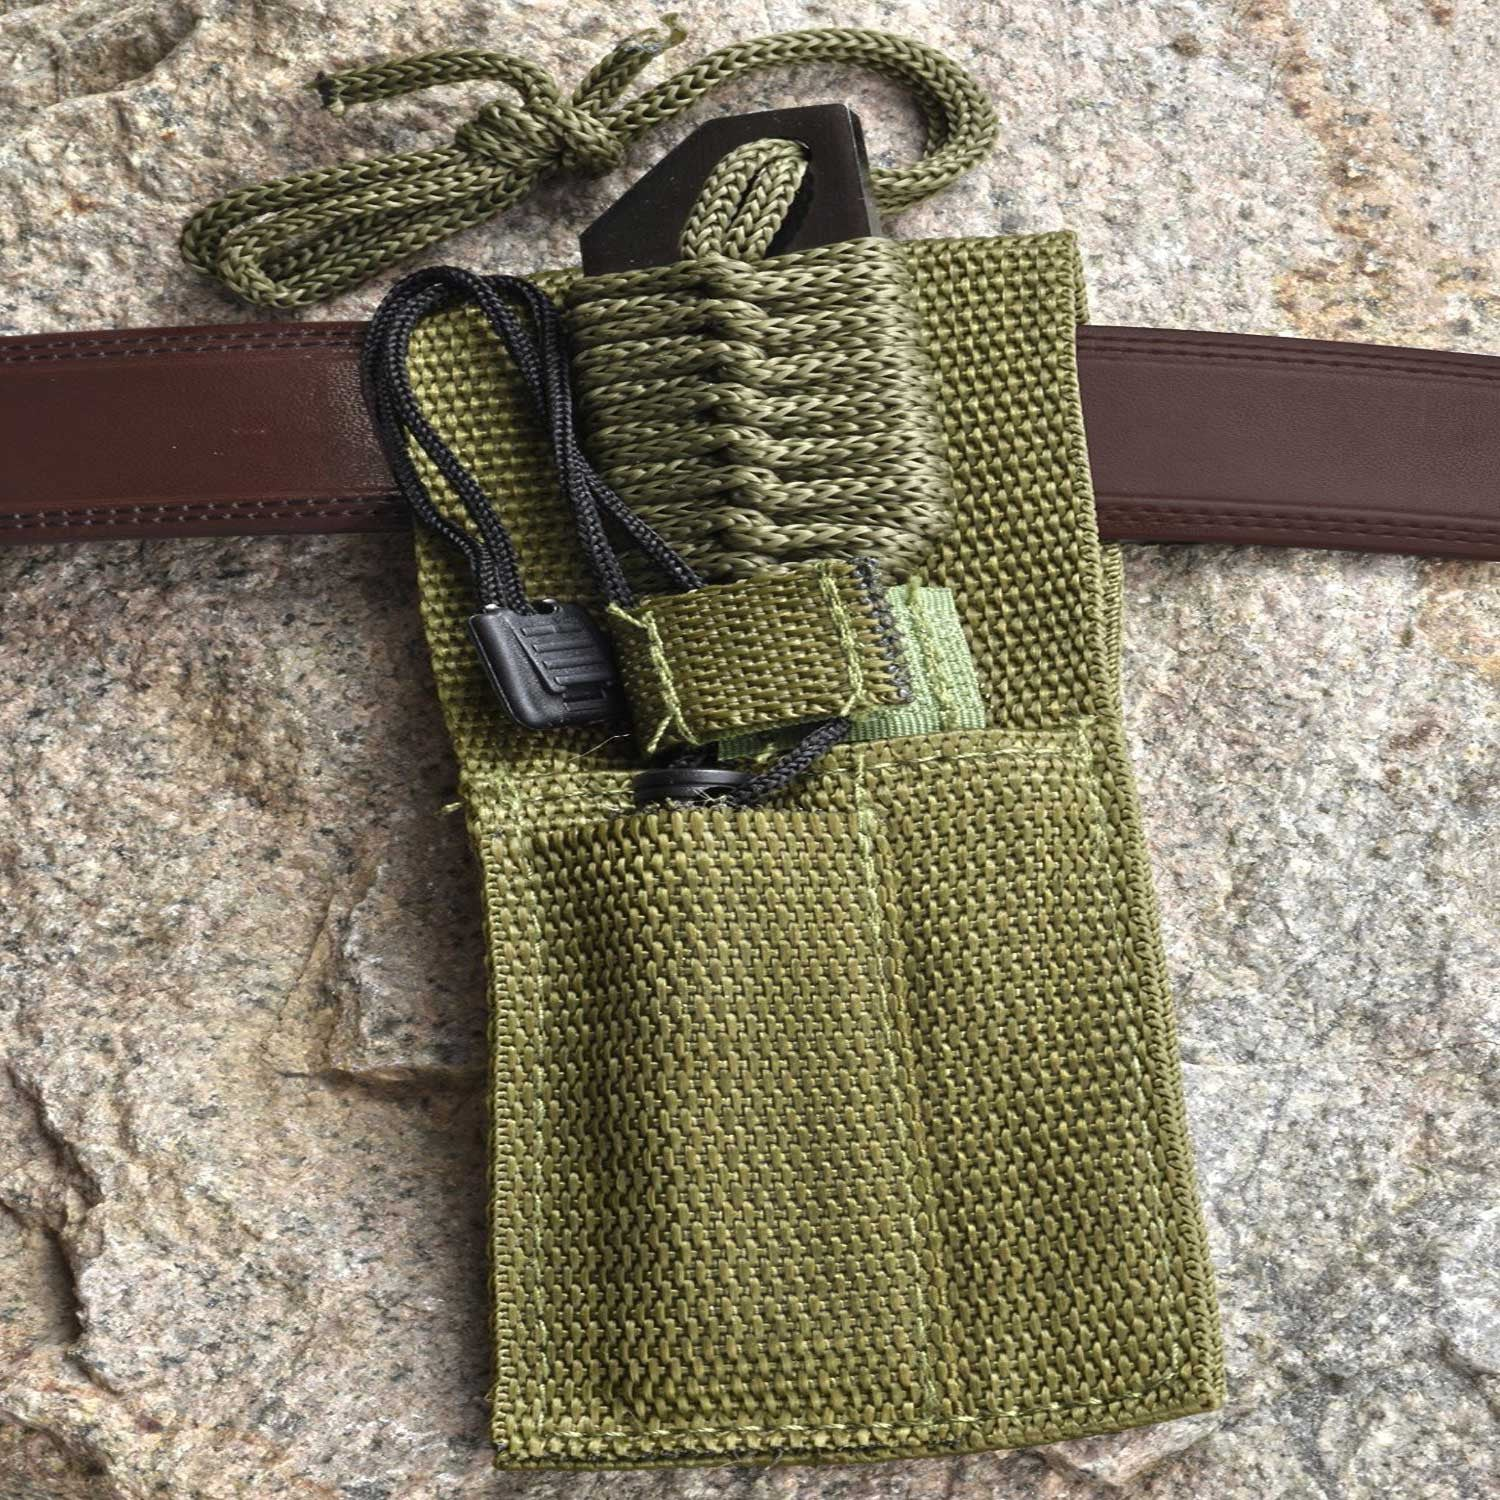 Tactical Knife With Fire Starter - OddGifts.com